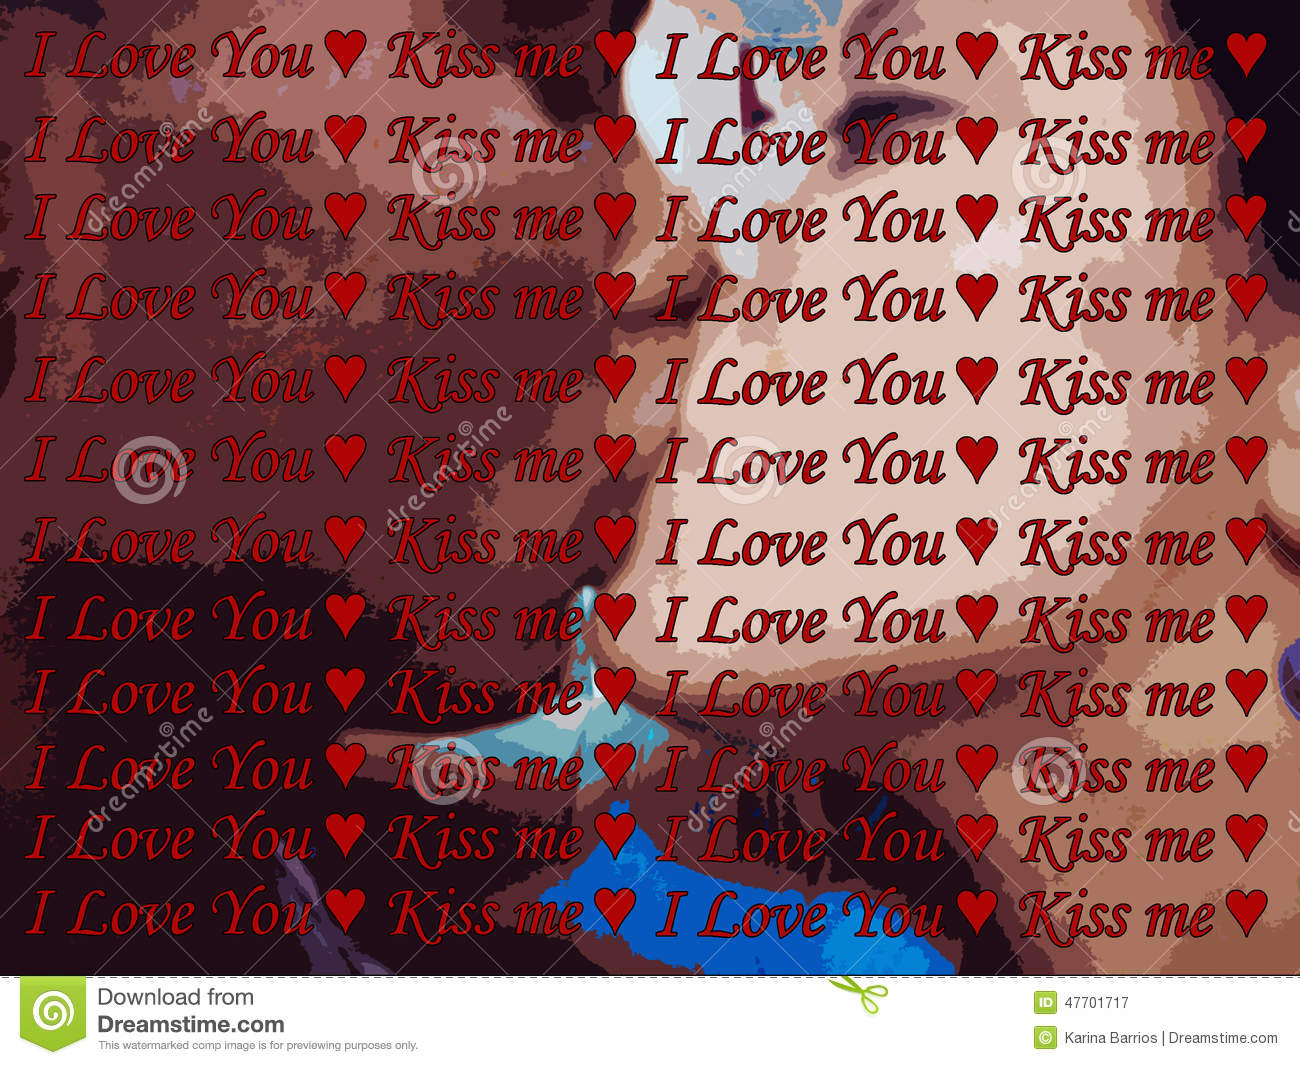 I Love You You Love Me Wallpaper : I Love You Kiss Me Photos Wallpaper sportstle